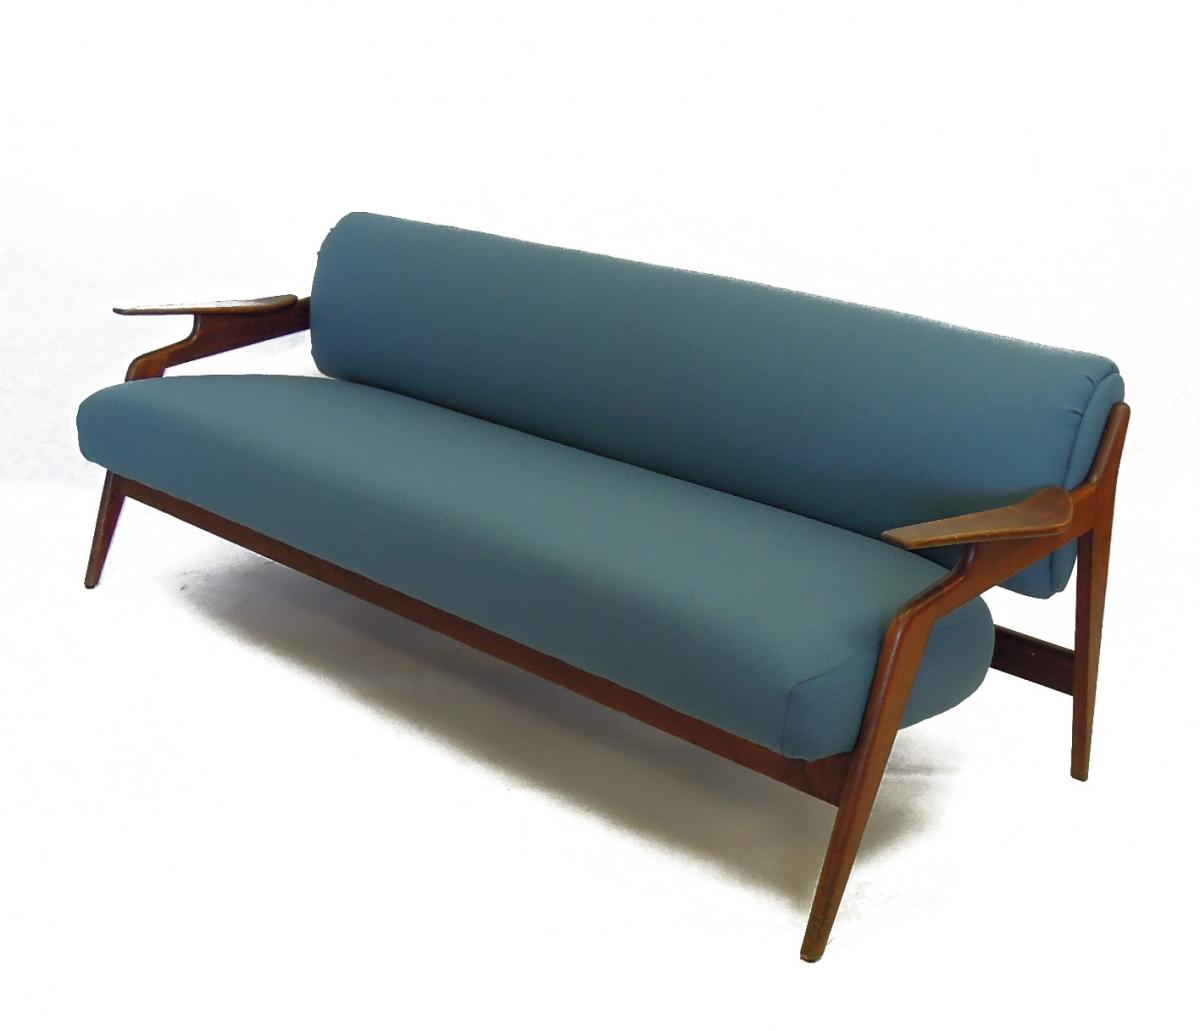 reupholster sofa nyc folding foam bed india mid century and scandinavian furniture reupholstery